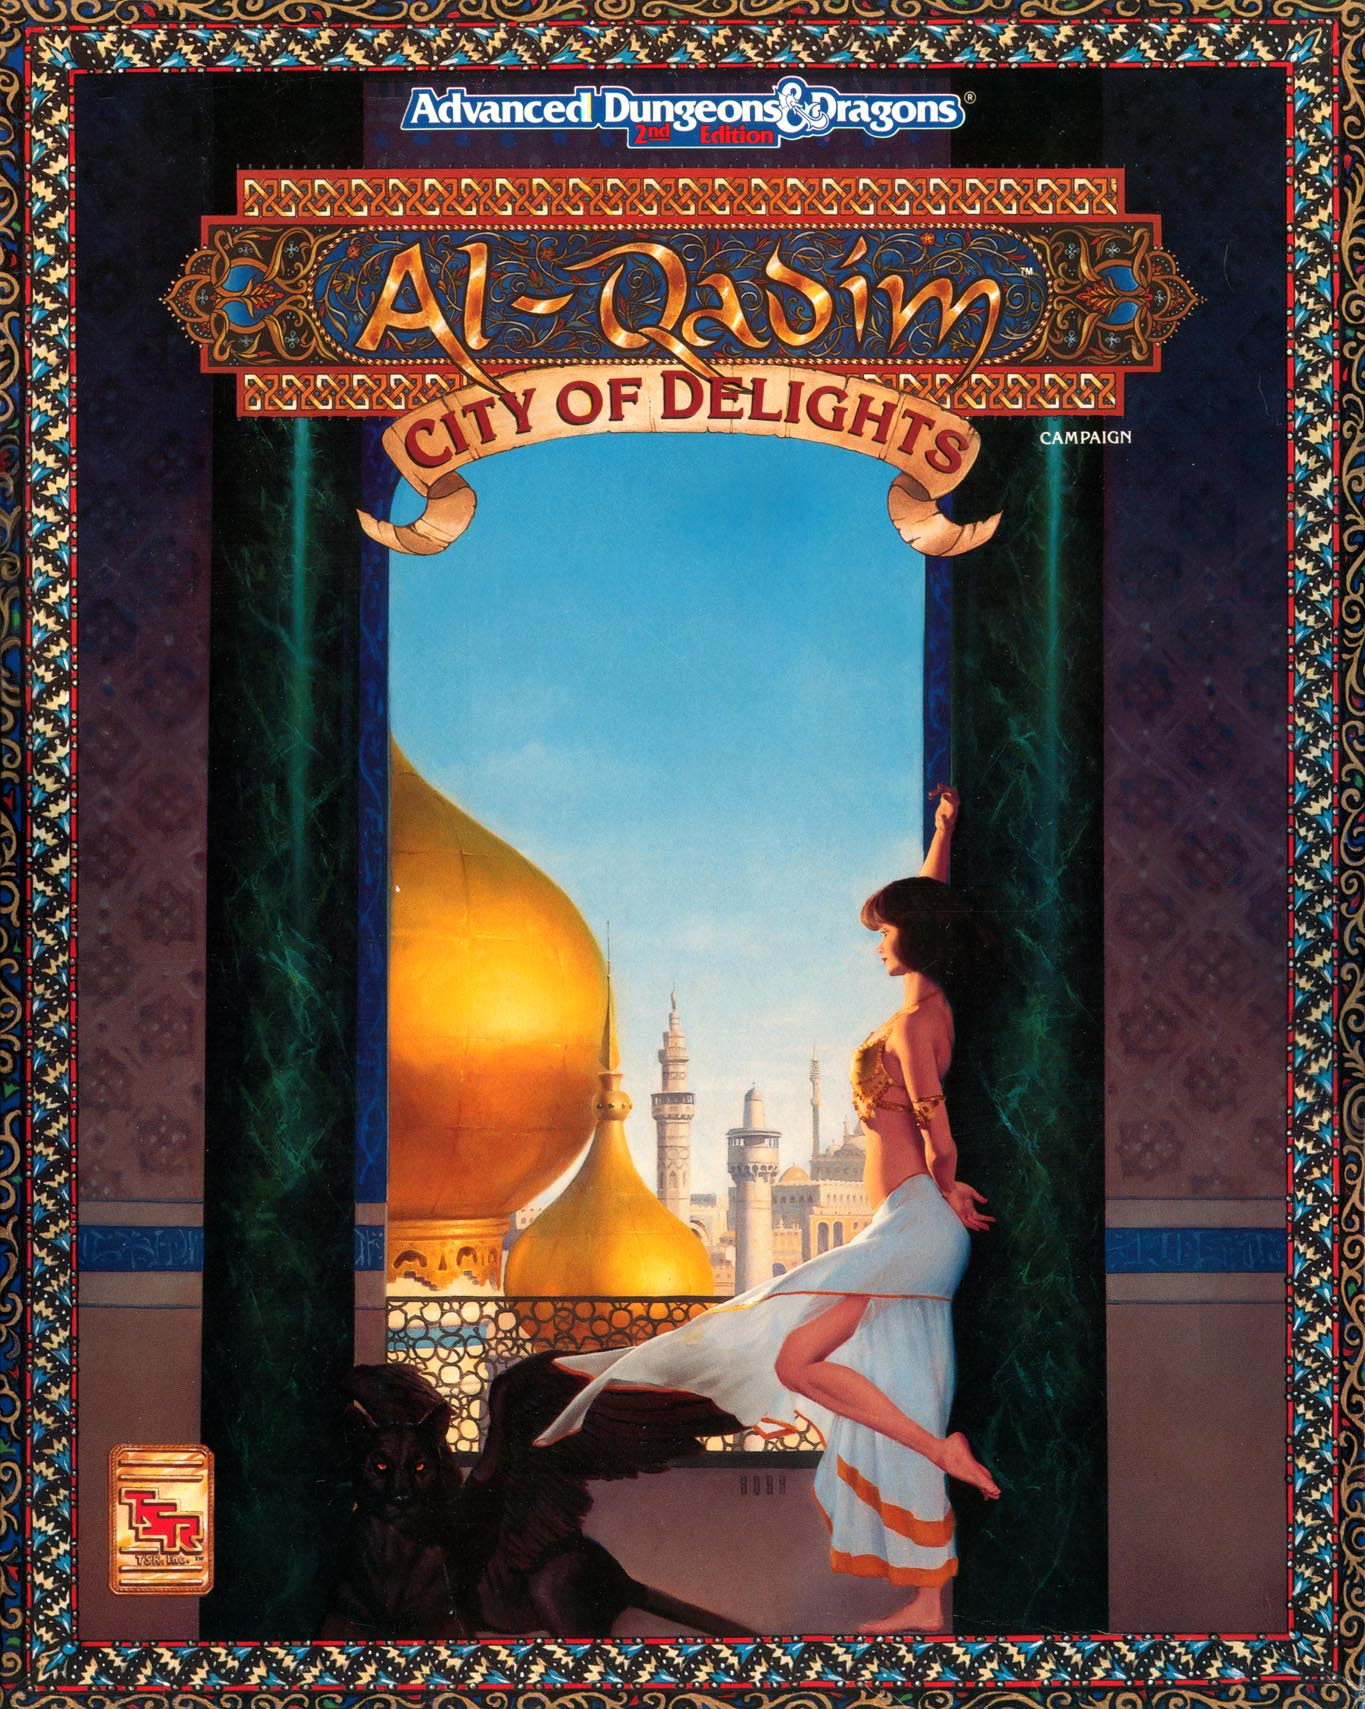 City of Delights